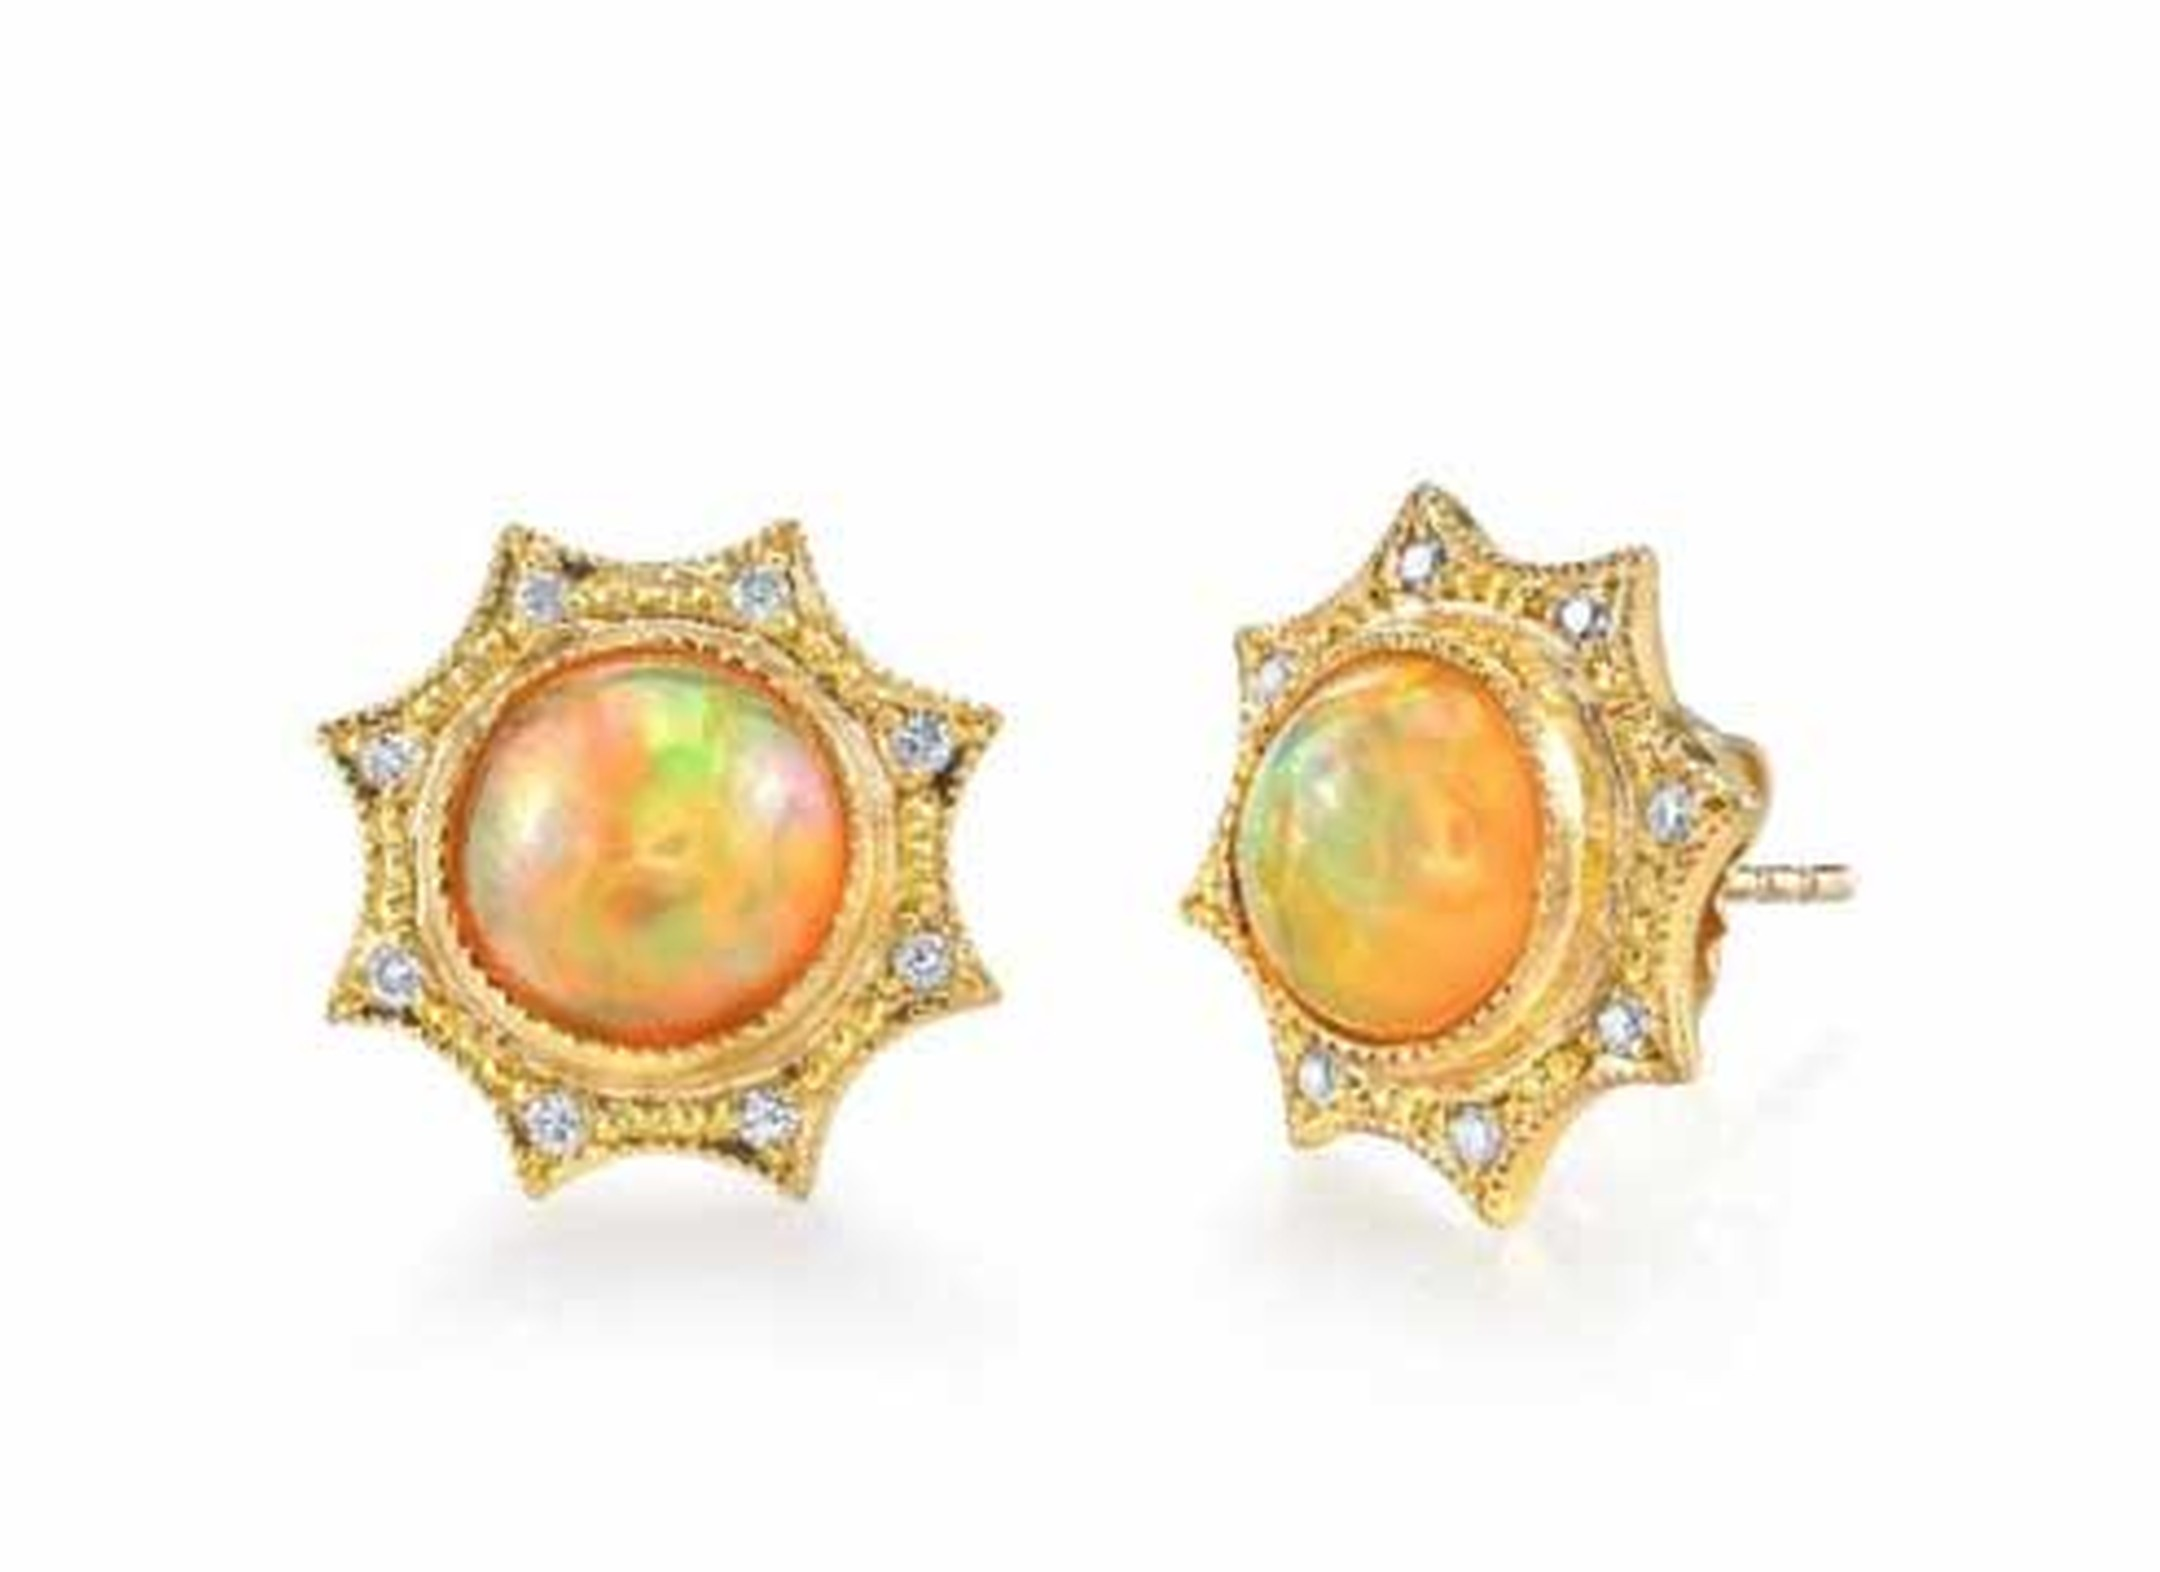 Arman Sarkisyan Opal Star earrings featuring a central opal framed by eight diamonds.